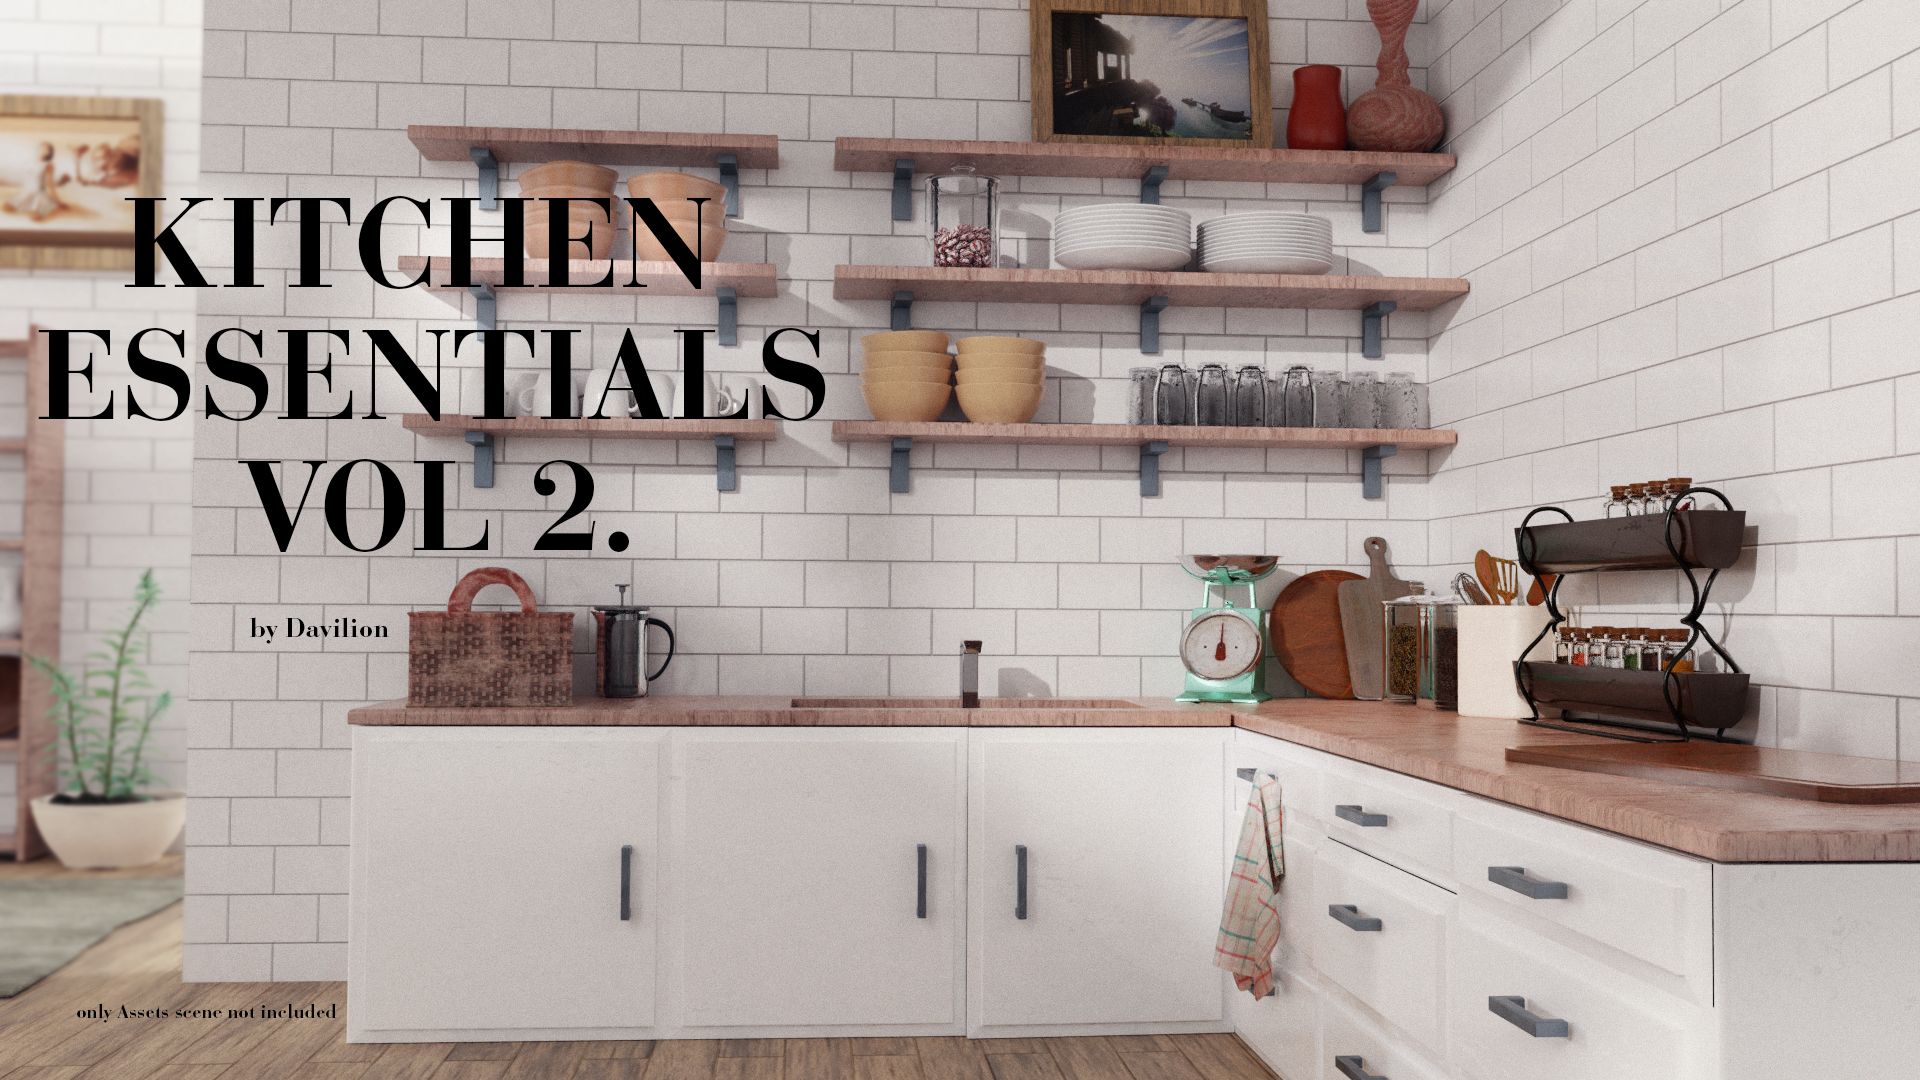 Vol2. Kitchen Essentials Asset Pack by Davilion preview image 1